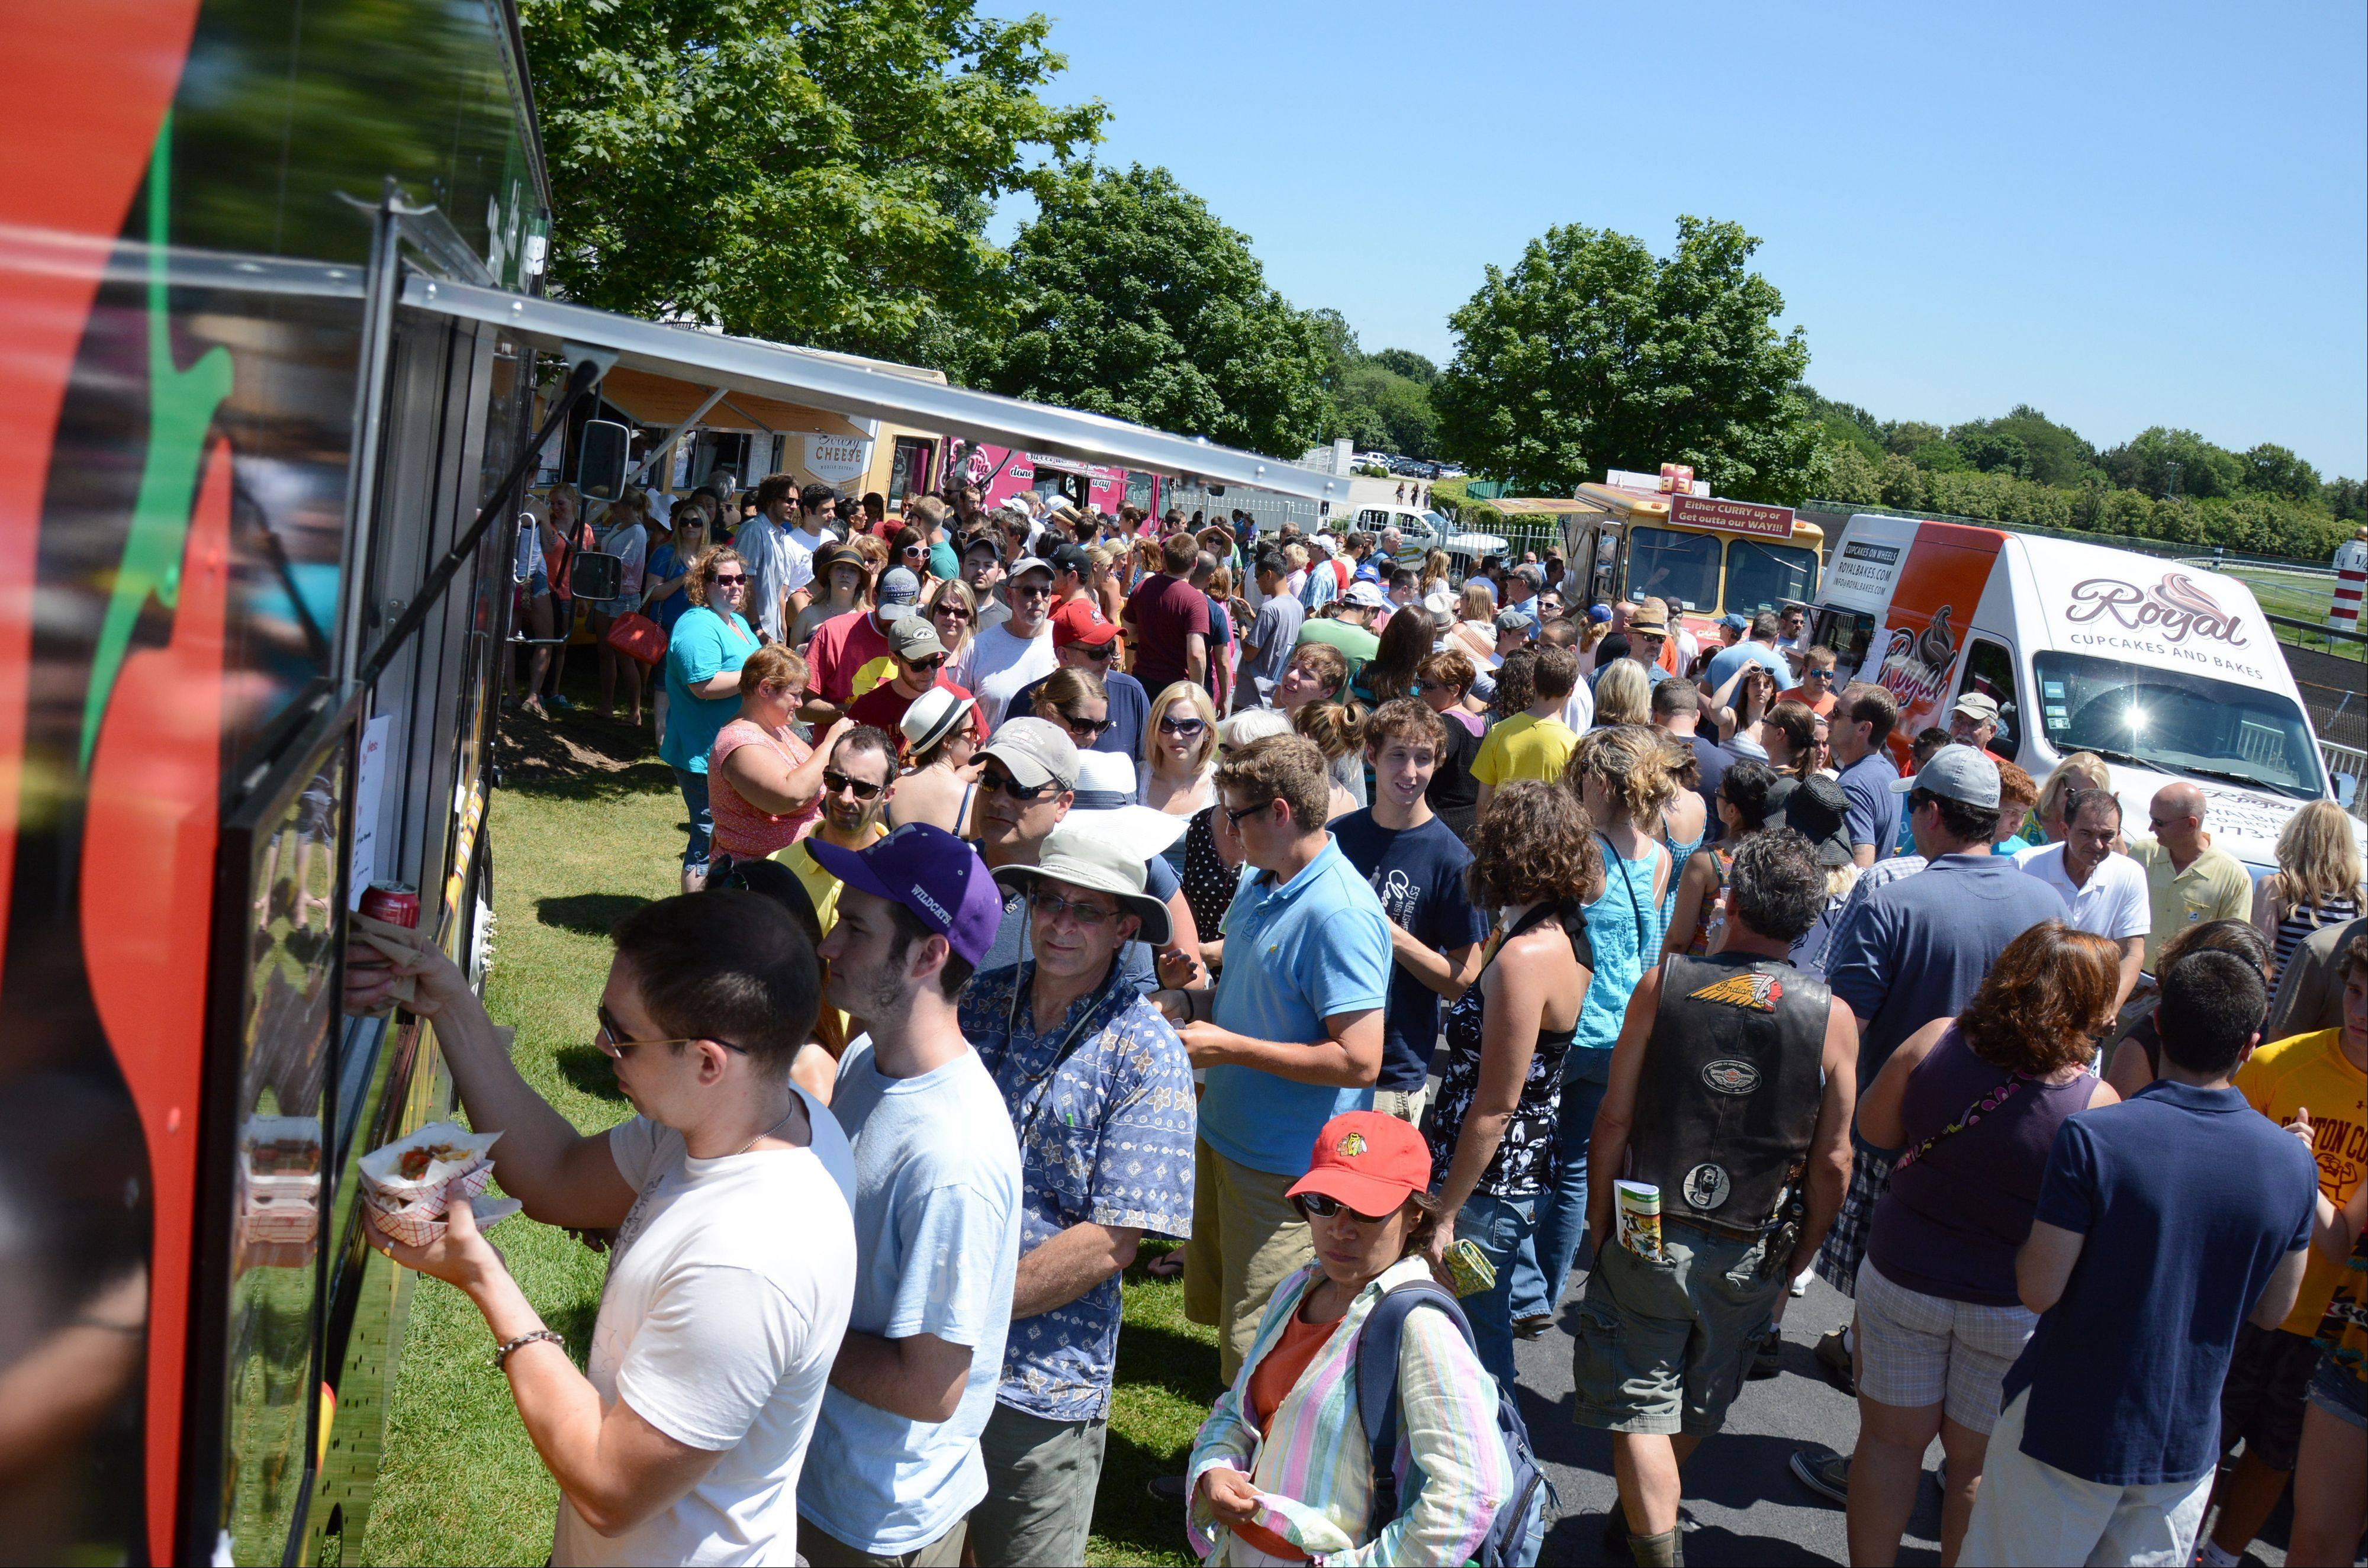 Crowds flock to the Food Truck Festival at Arlington Park on Saturday.